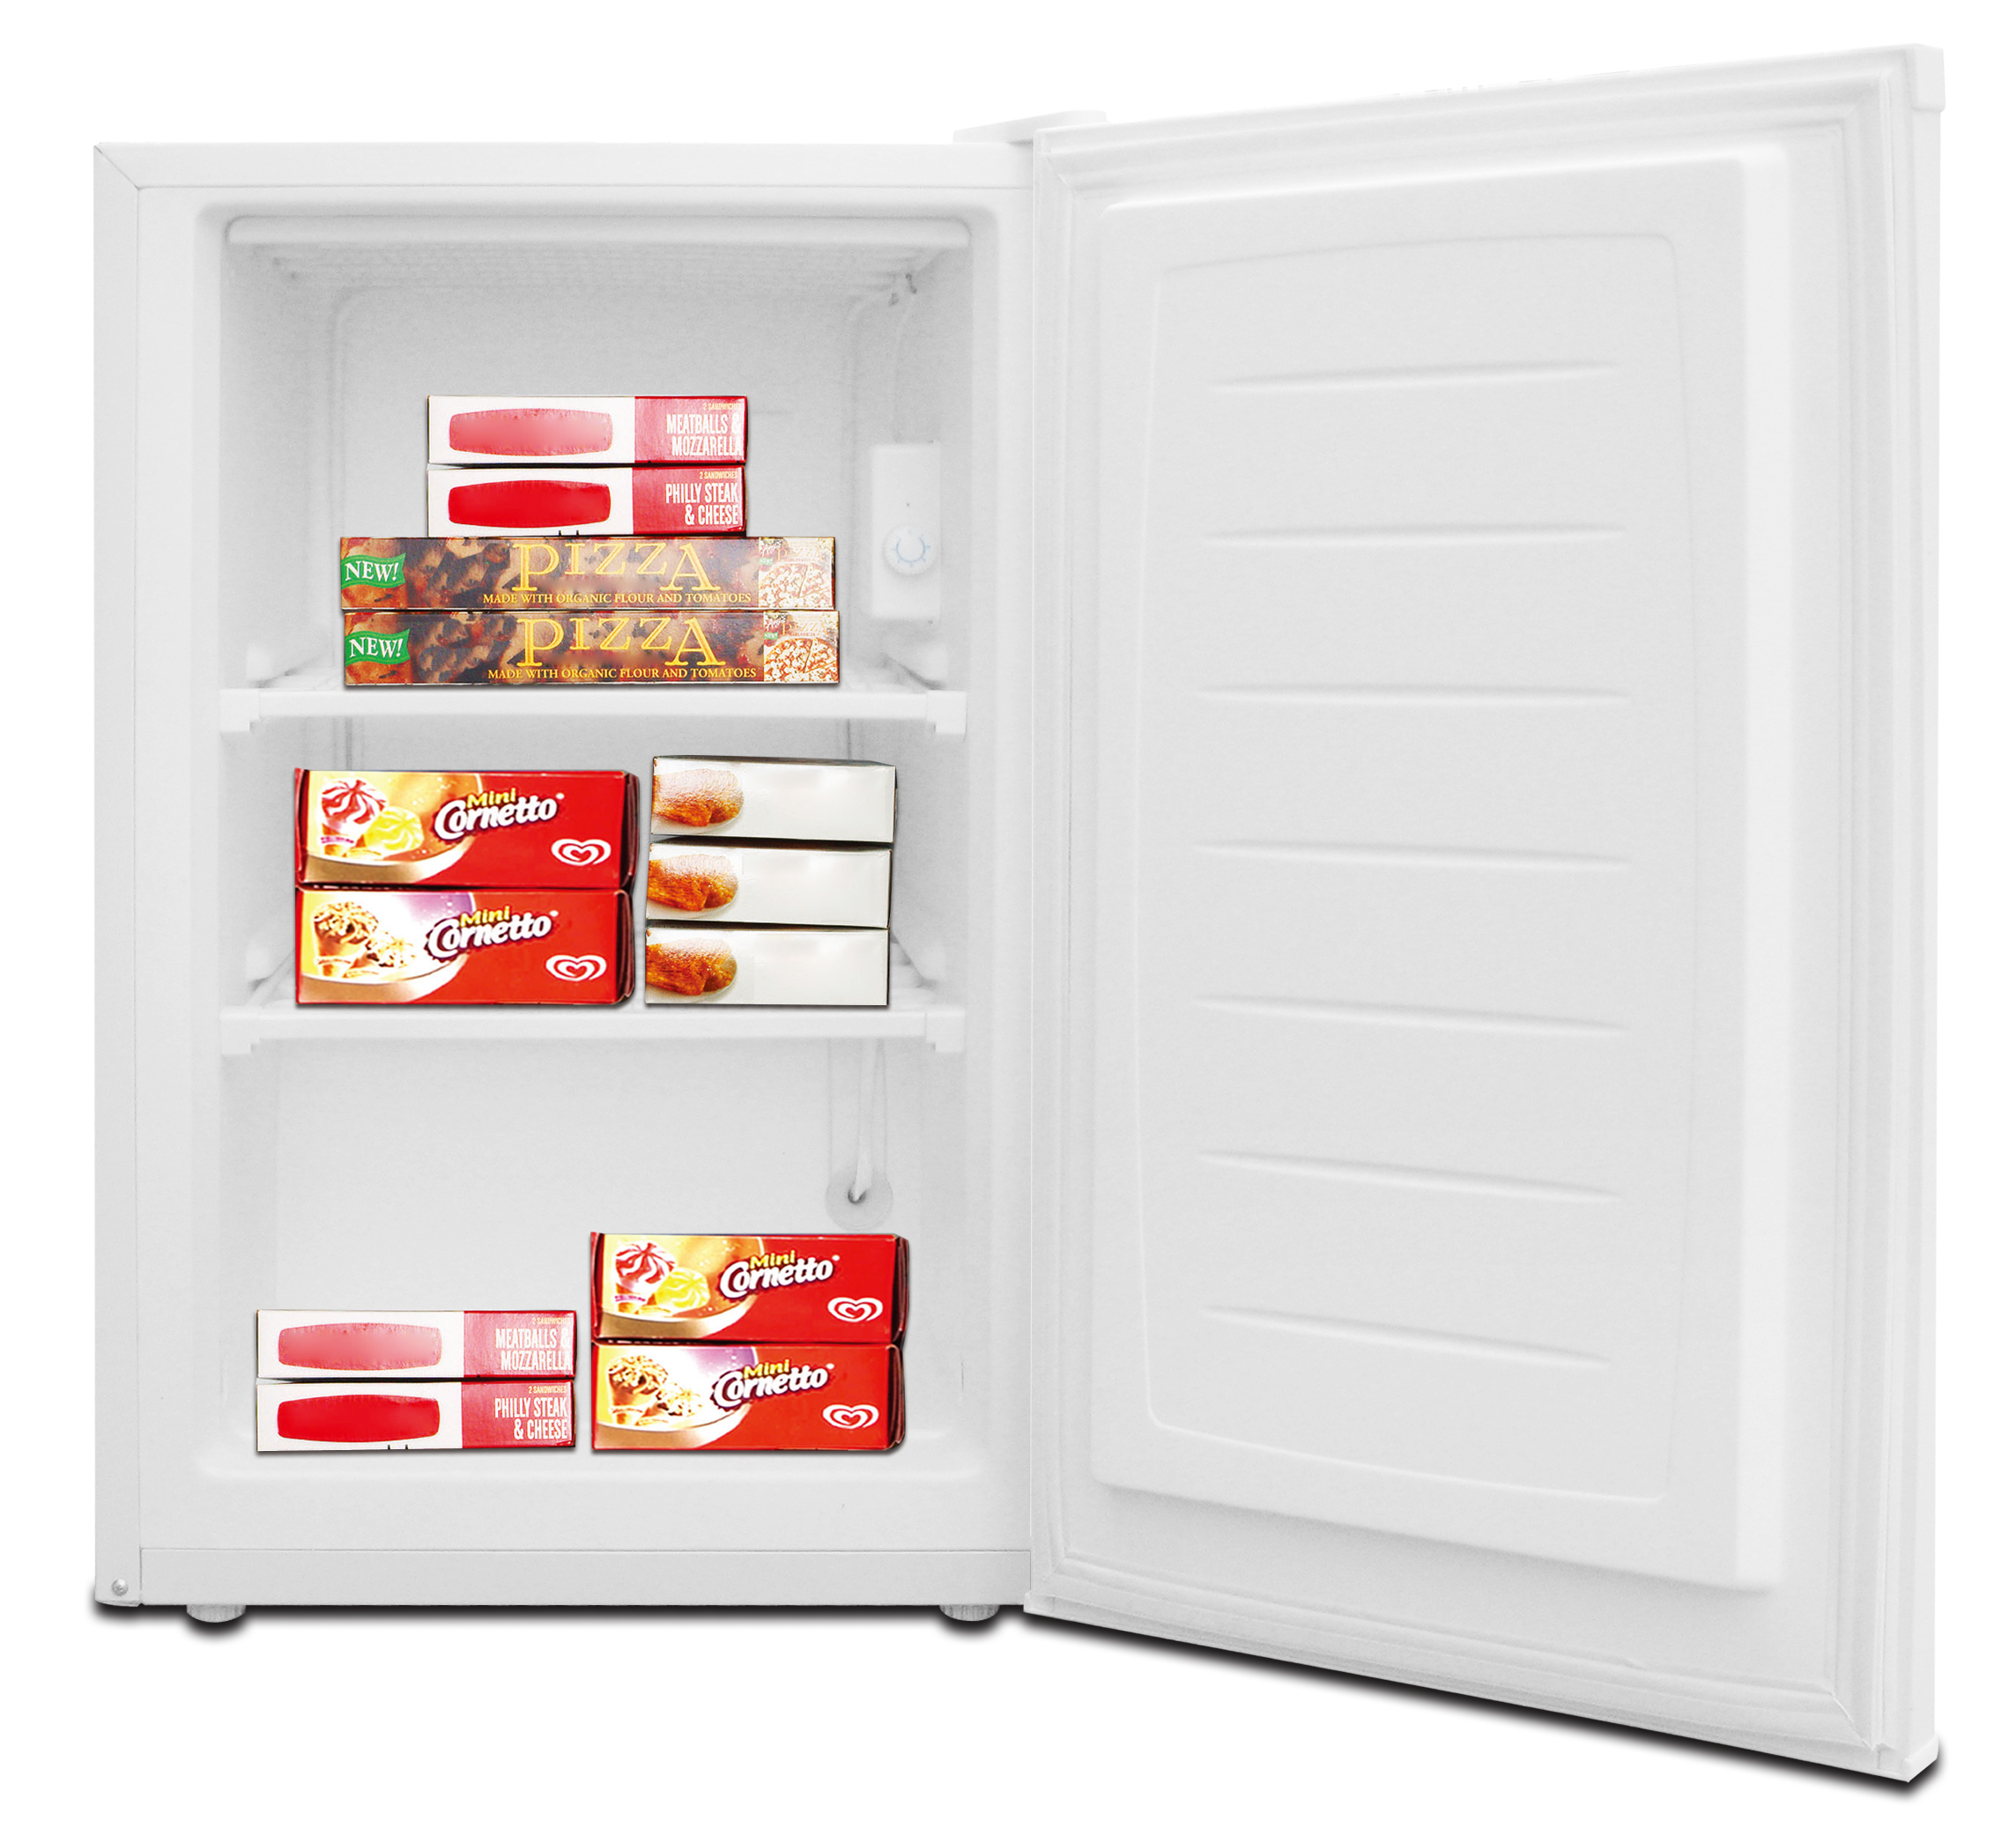 RCA, 3.0 CU. FT. Upright Freezer, White